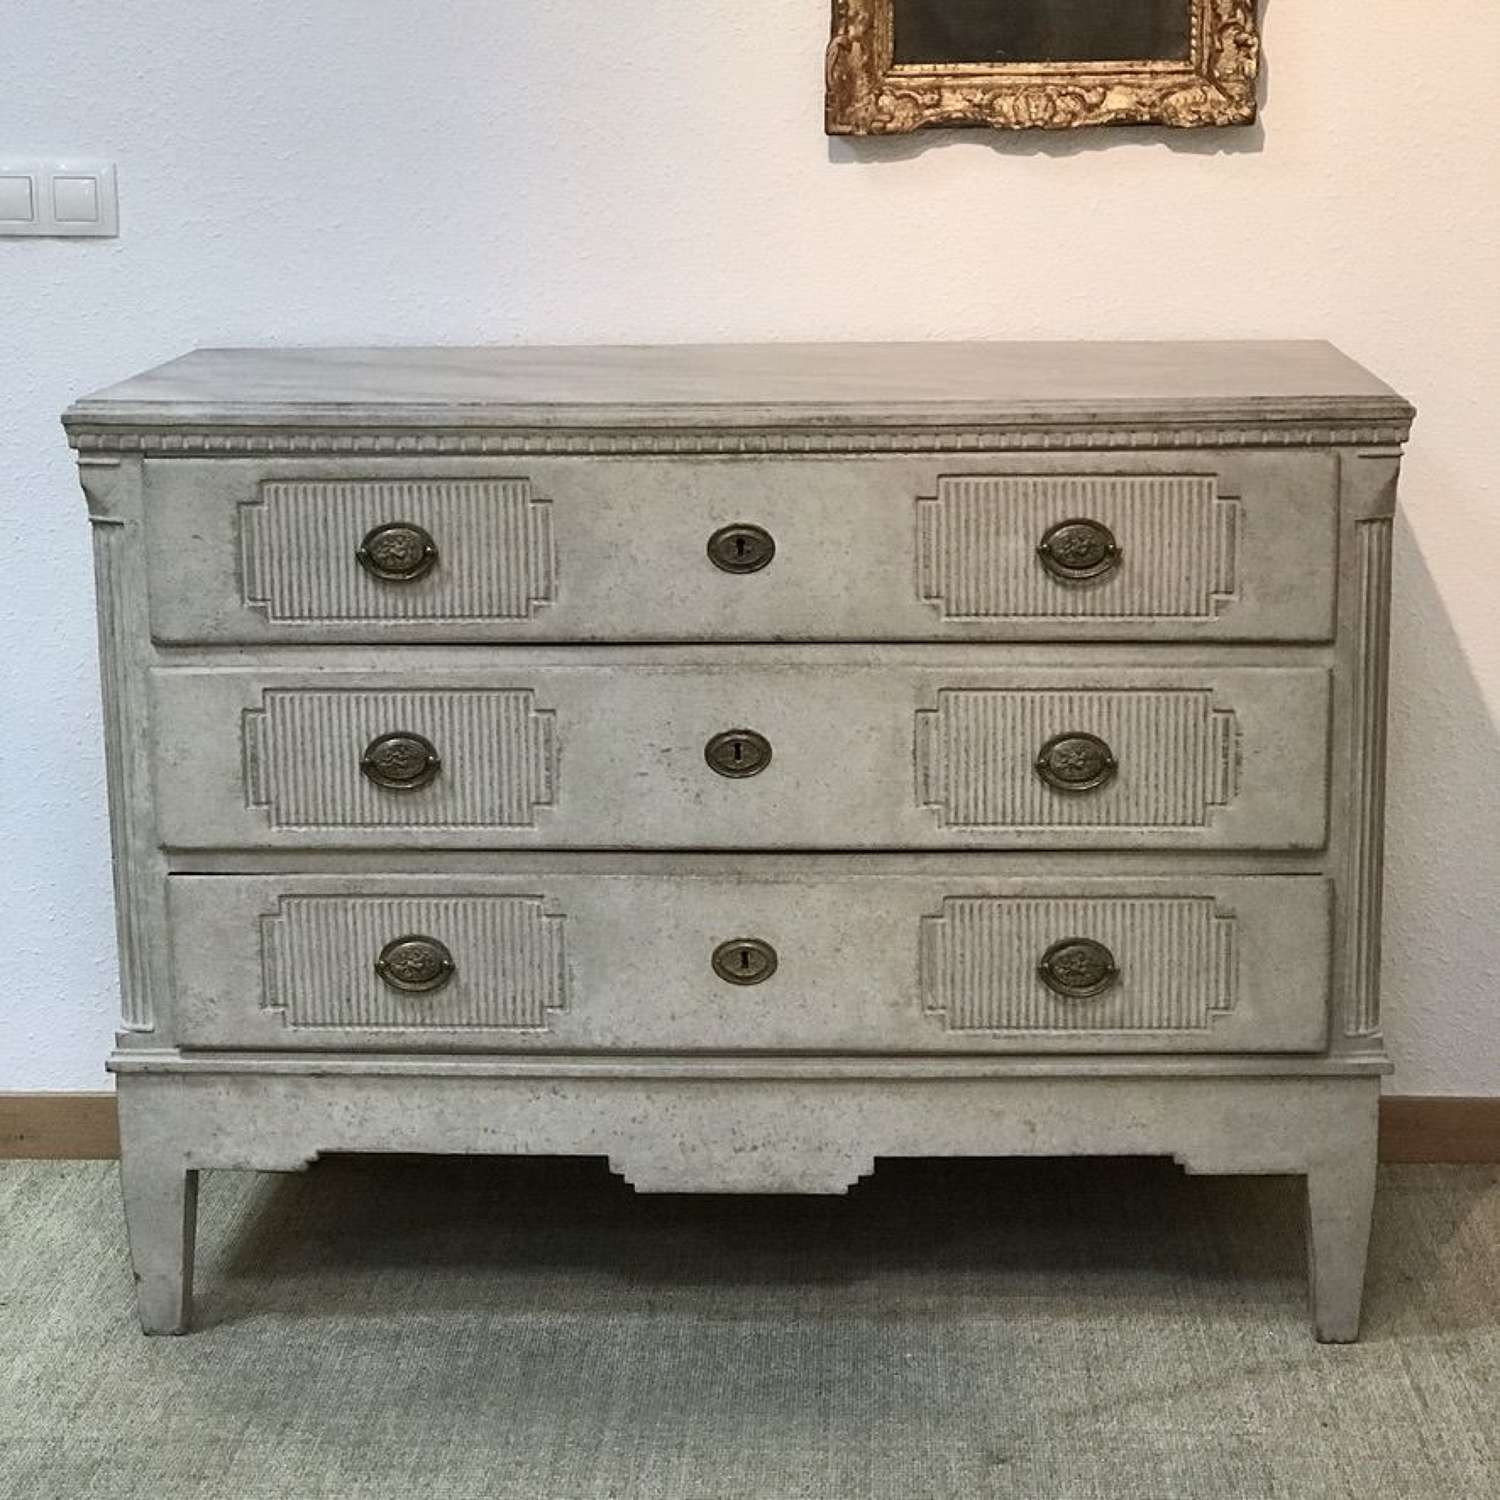 Gustavian Chest of Drawers, Circa 1790